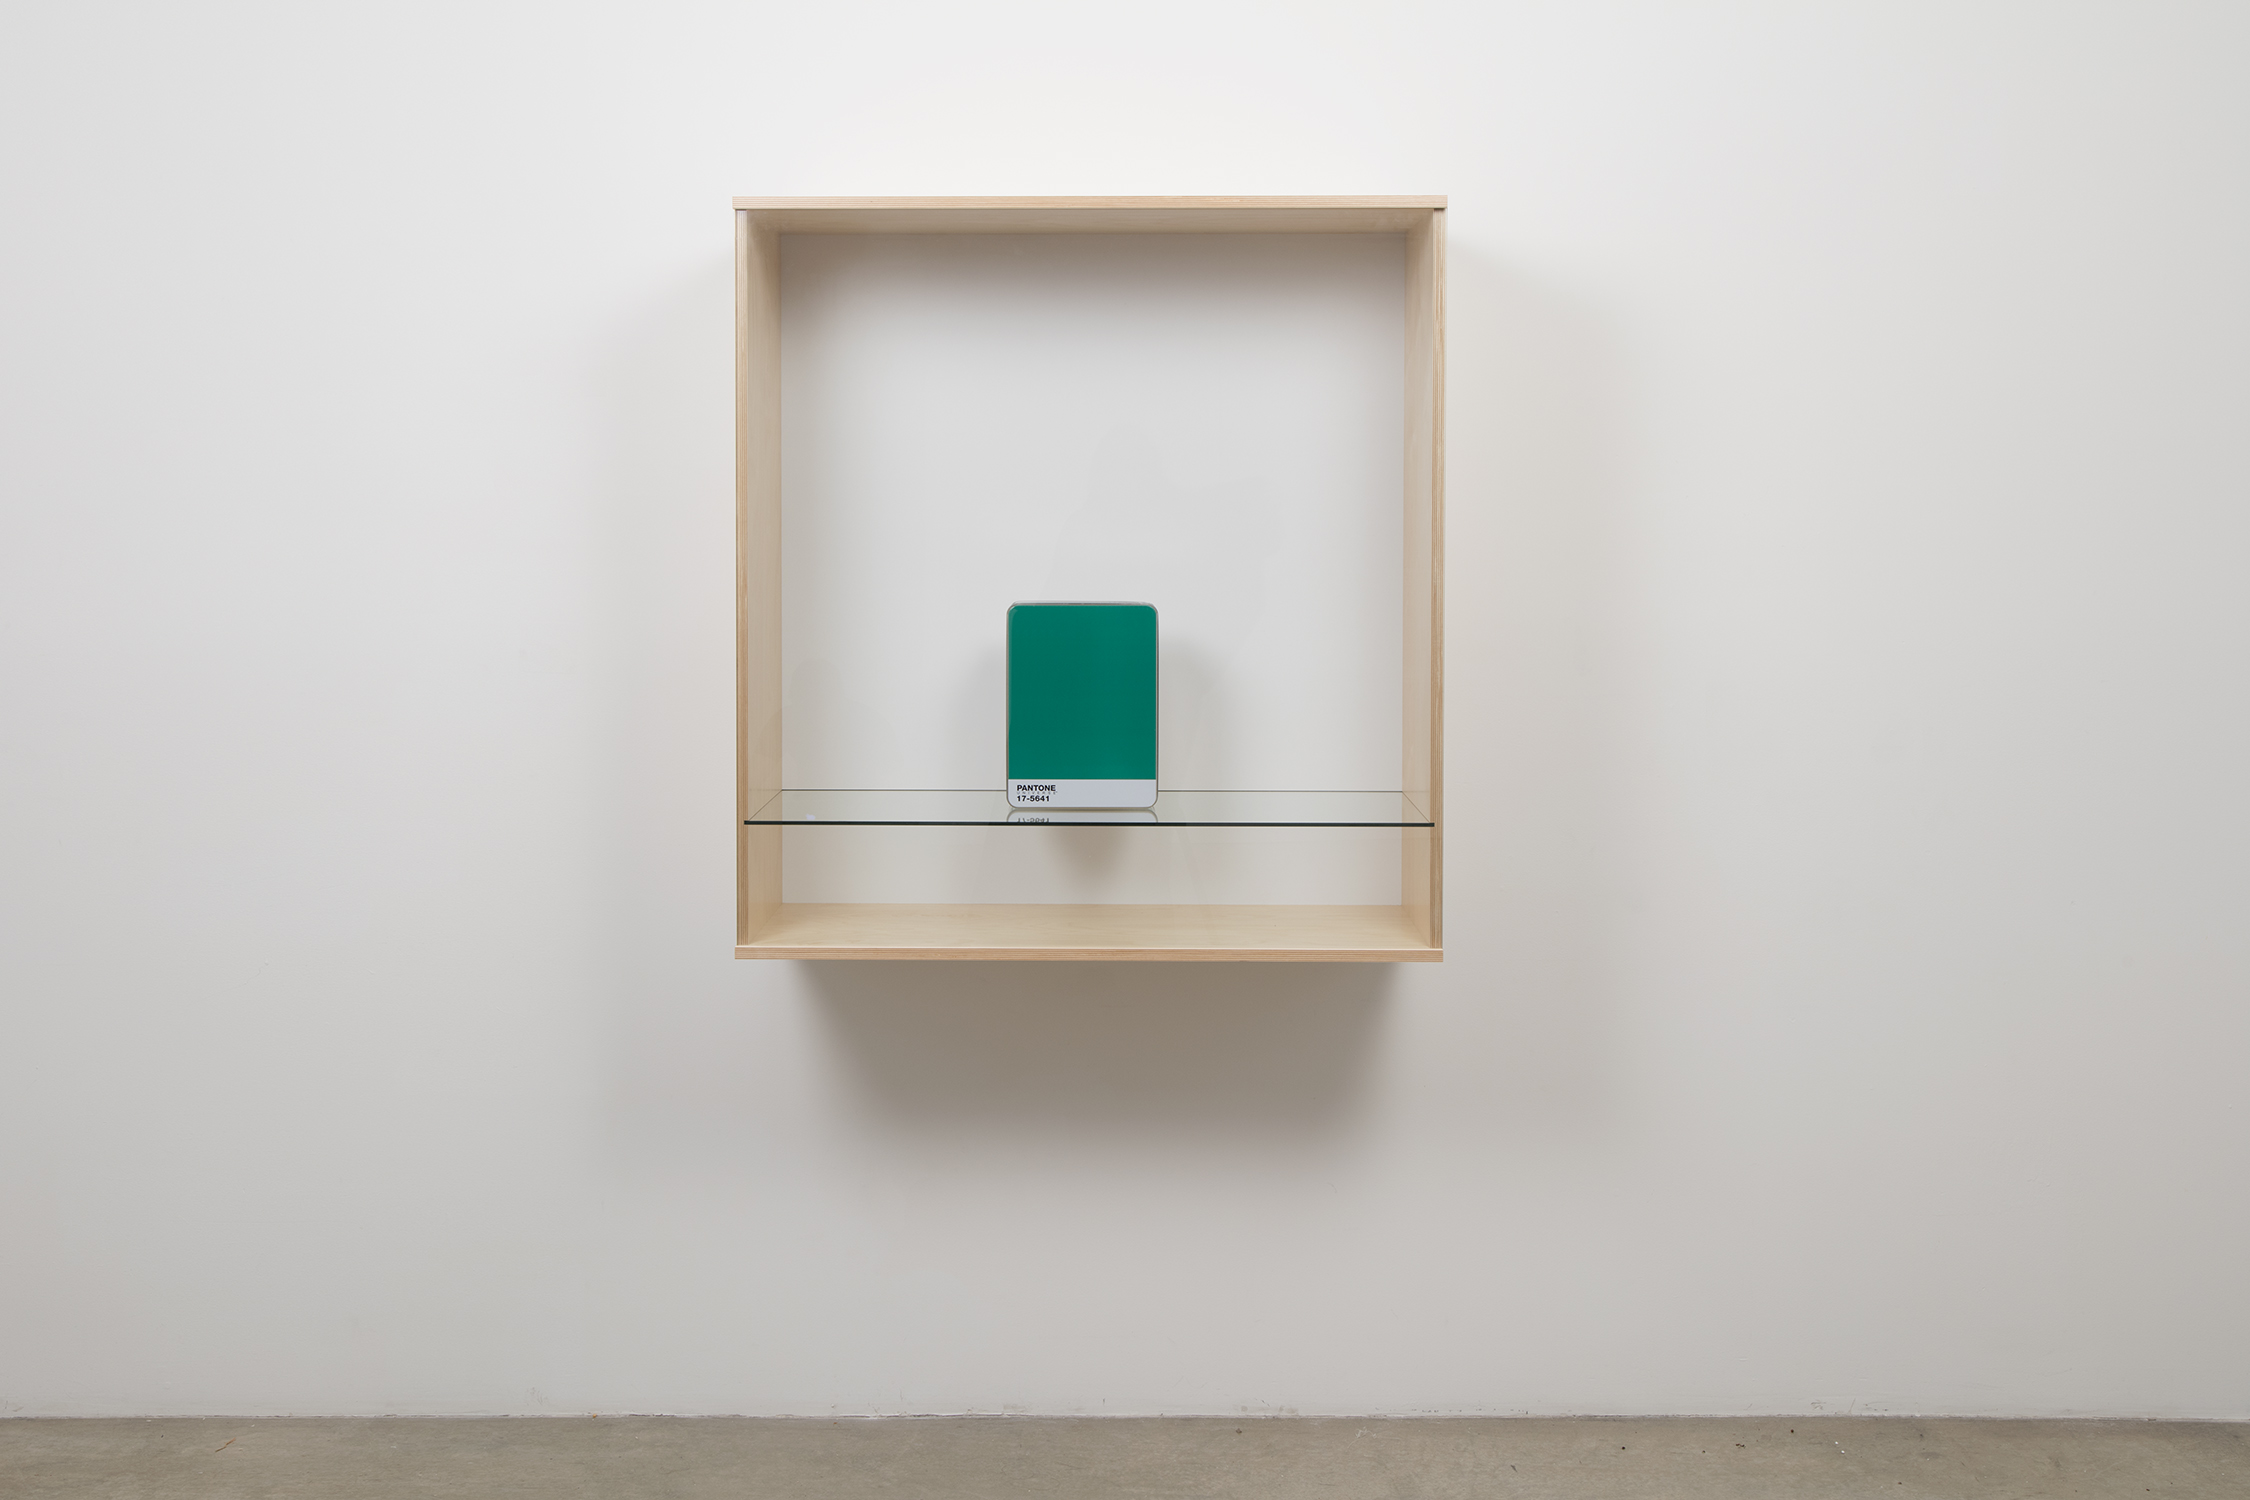 Untitled (Pantone 17-5641) , 2016, Baltic birch plywood, plastic laminate and glass box, metal Pantone storage box, 41 3/8 x 39 3/8 x 17 1/2 in. (105.1 x 100 x 44.5 cm). Courtesy of the artist and Tanya Bonakdar Gallery, New York / Los Angeles